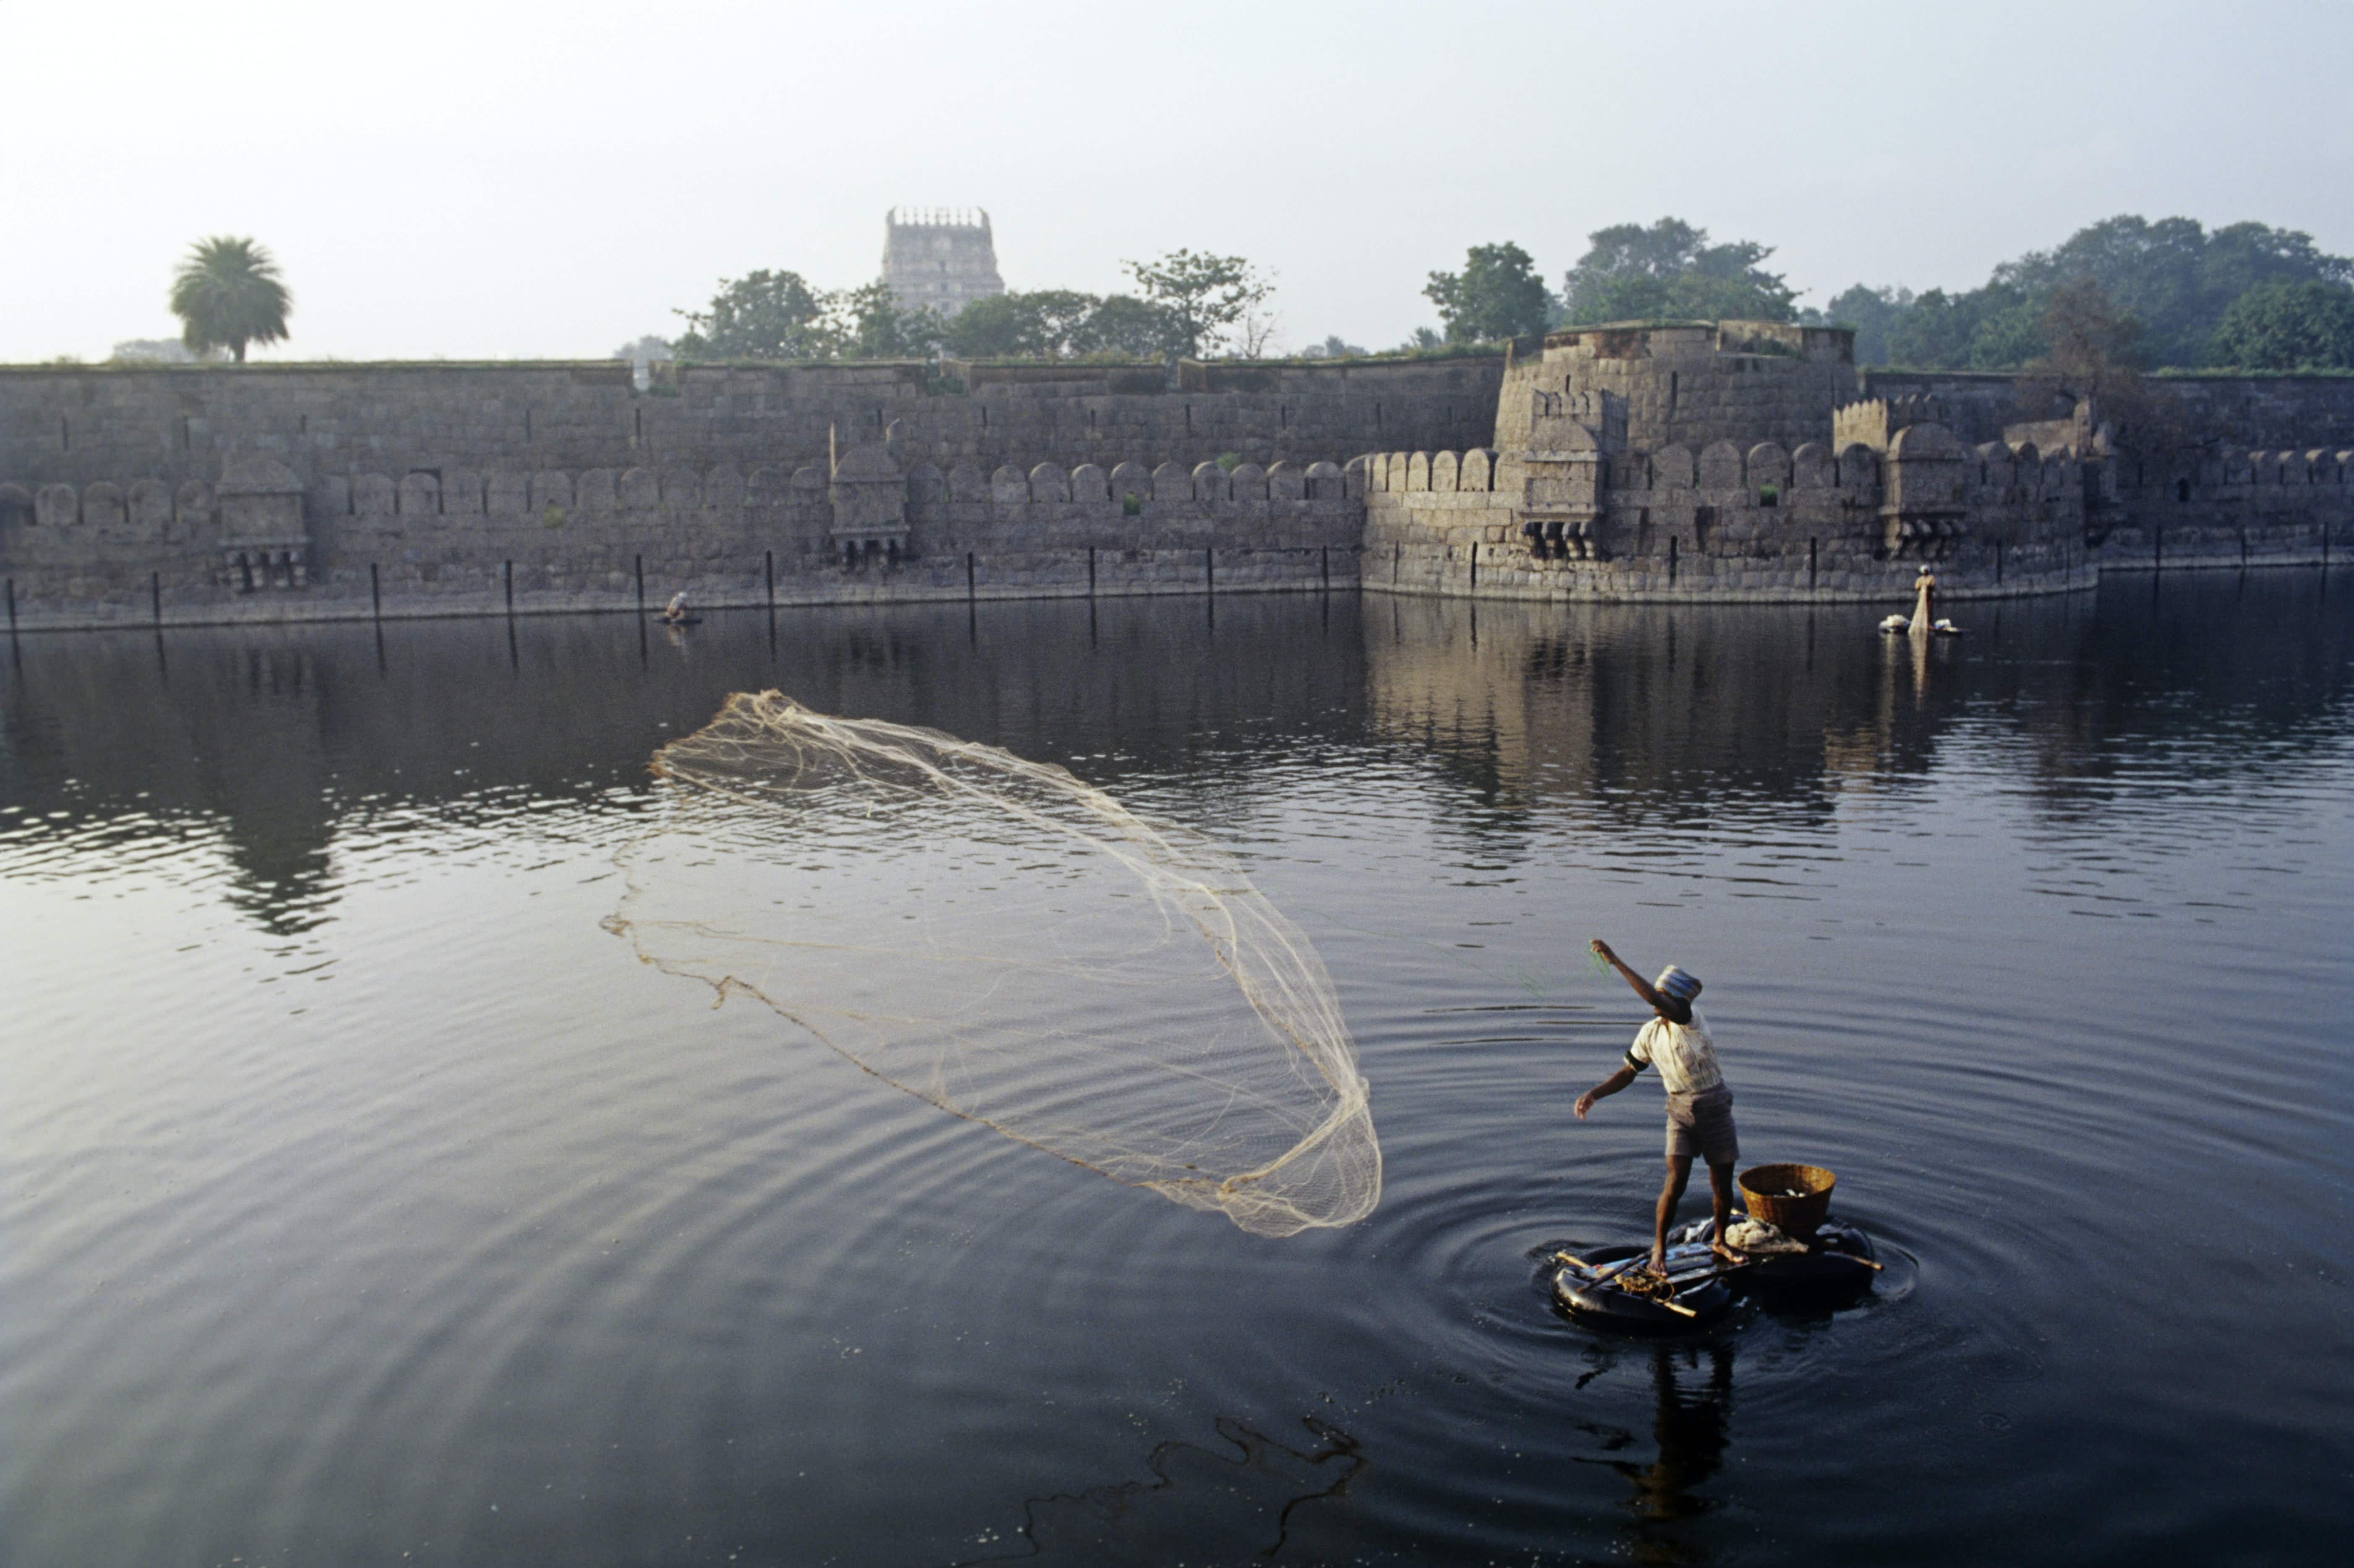 The imposing fort at Vellore was at various times Hindu, Muslim and Christian © IndiaPictures / Getty Images